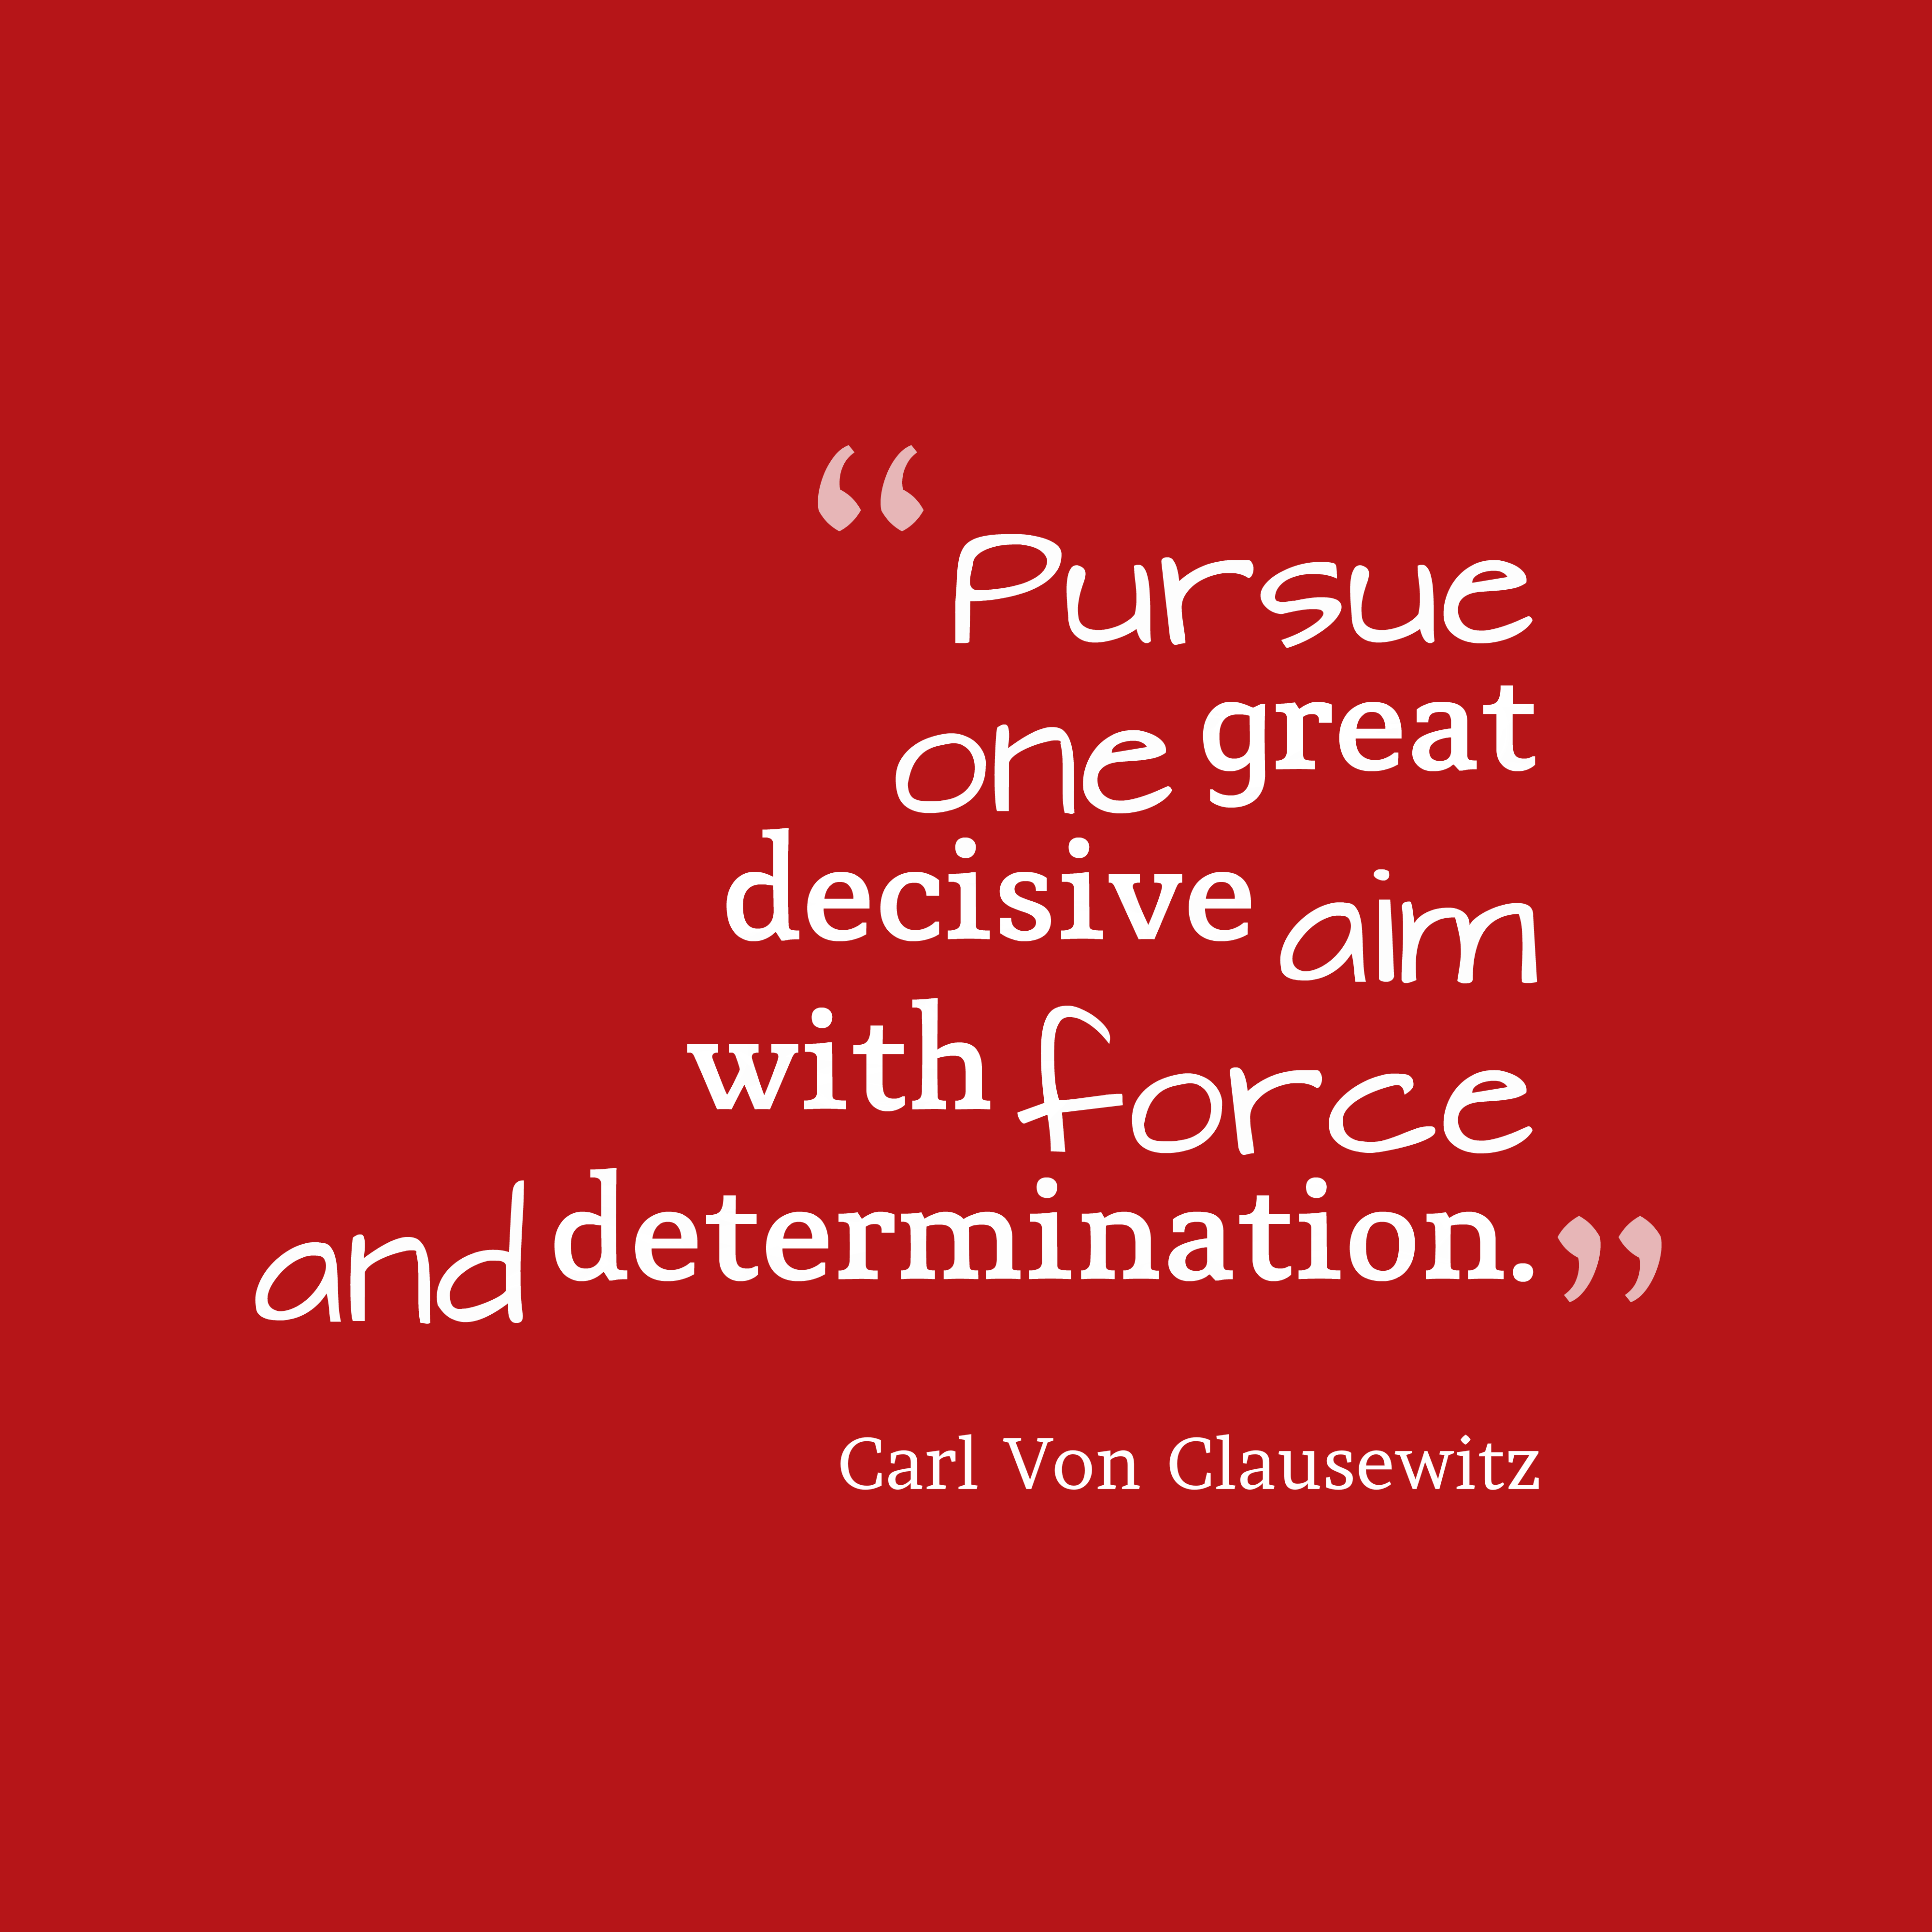 Quotes image of Pursue one great decisive aim with force and determination.